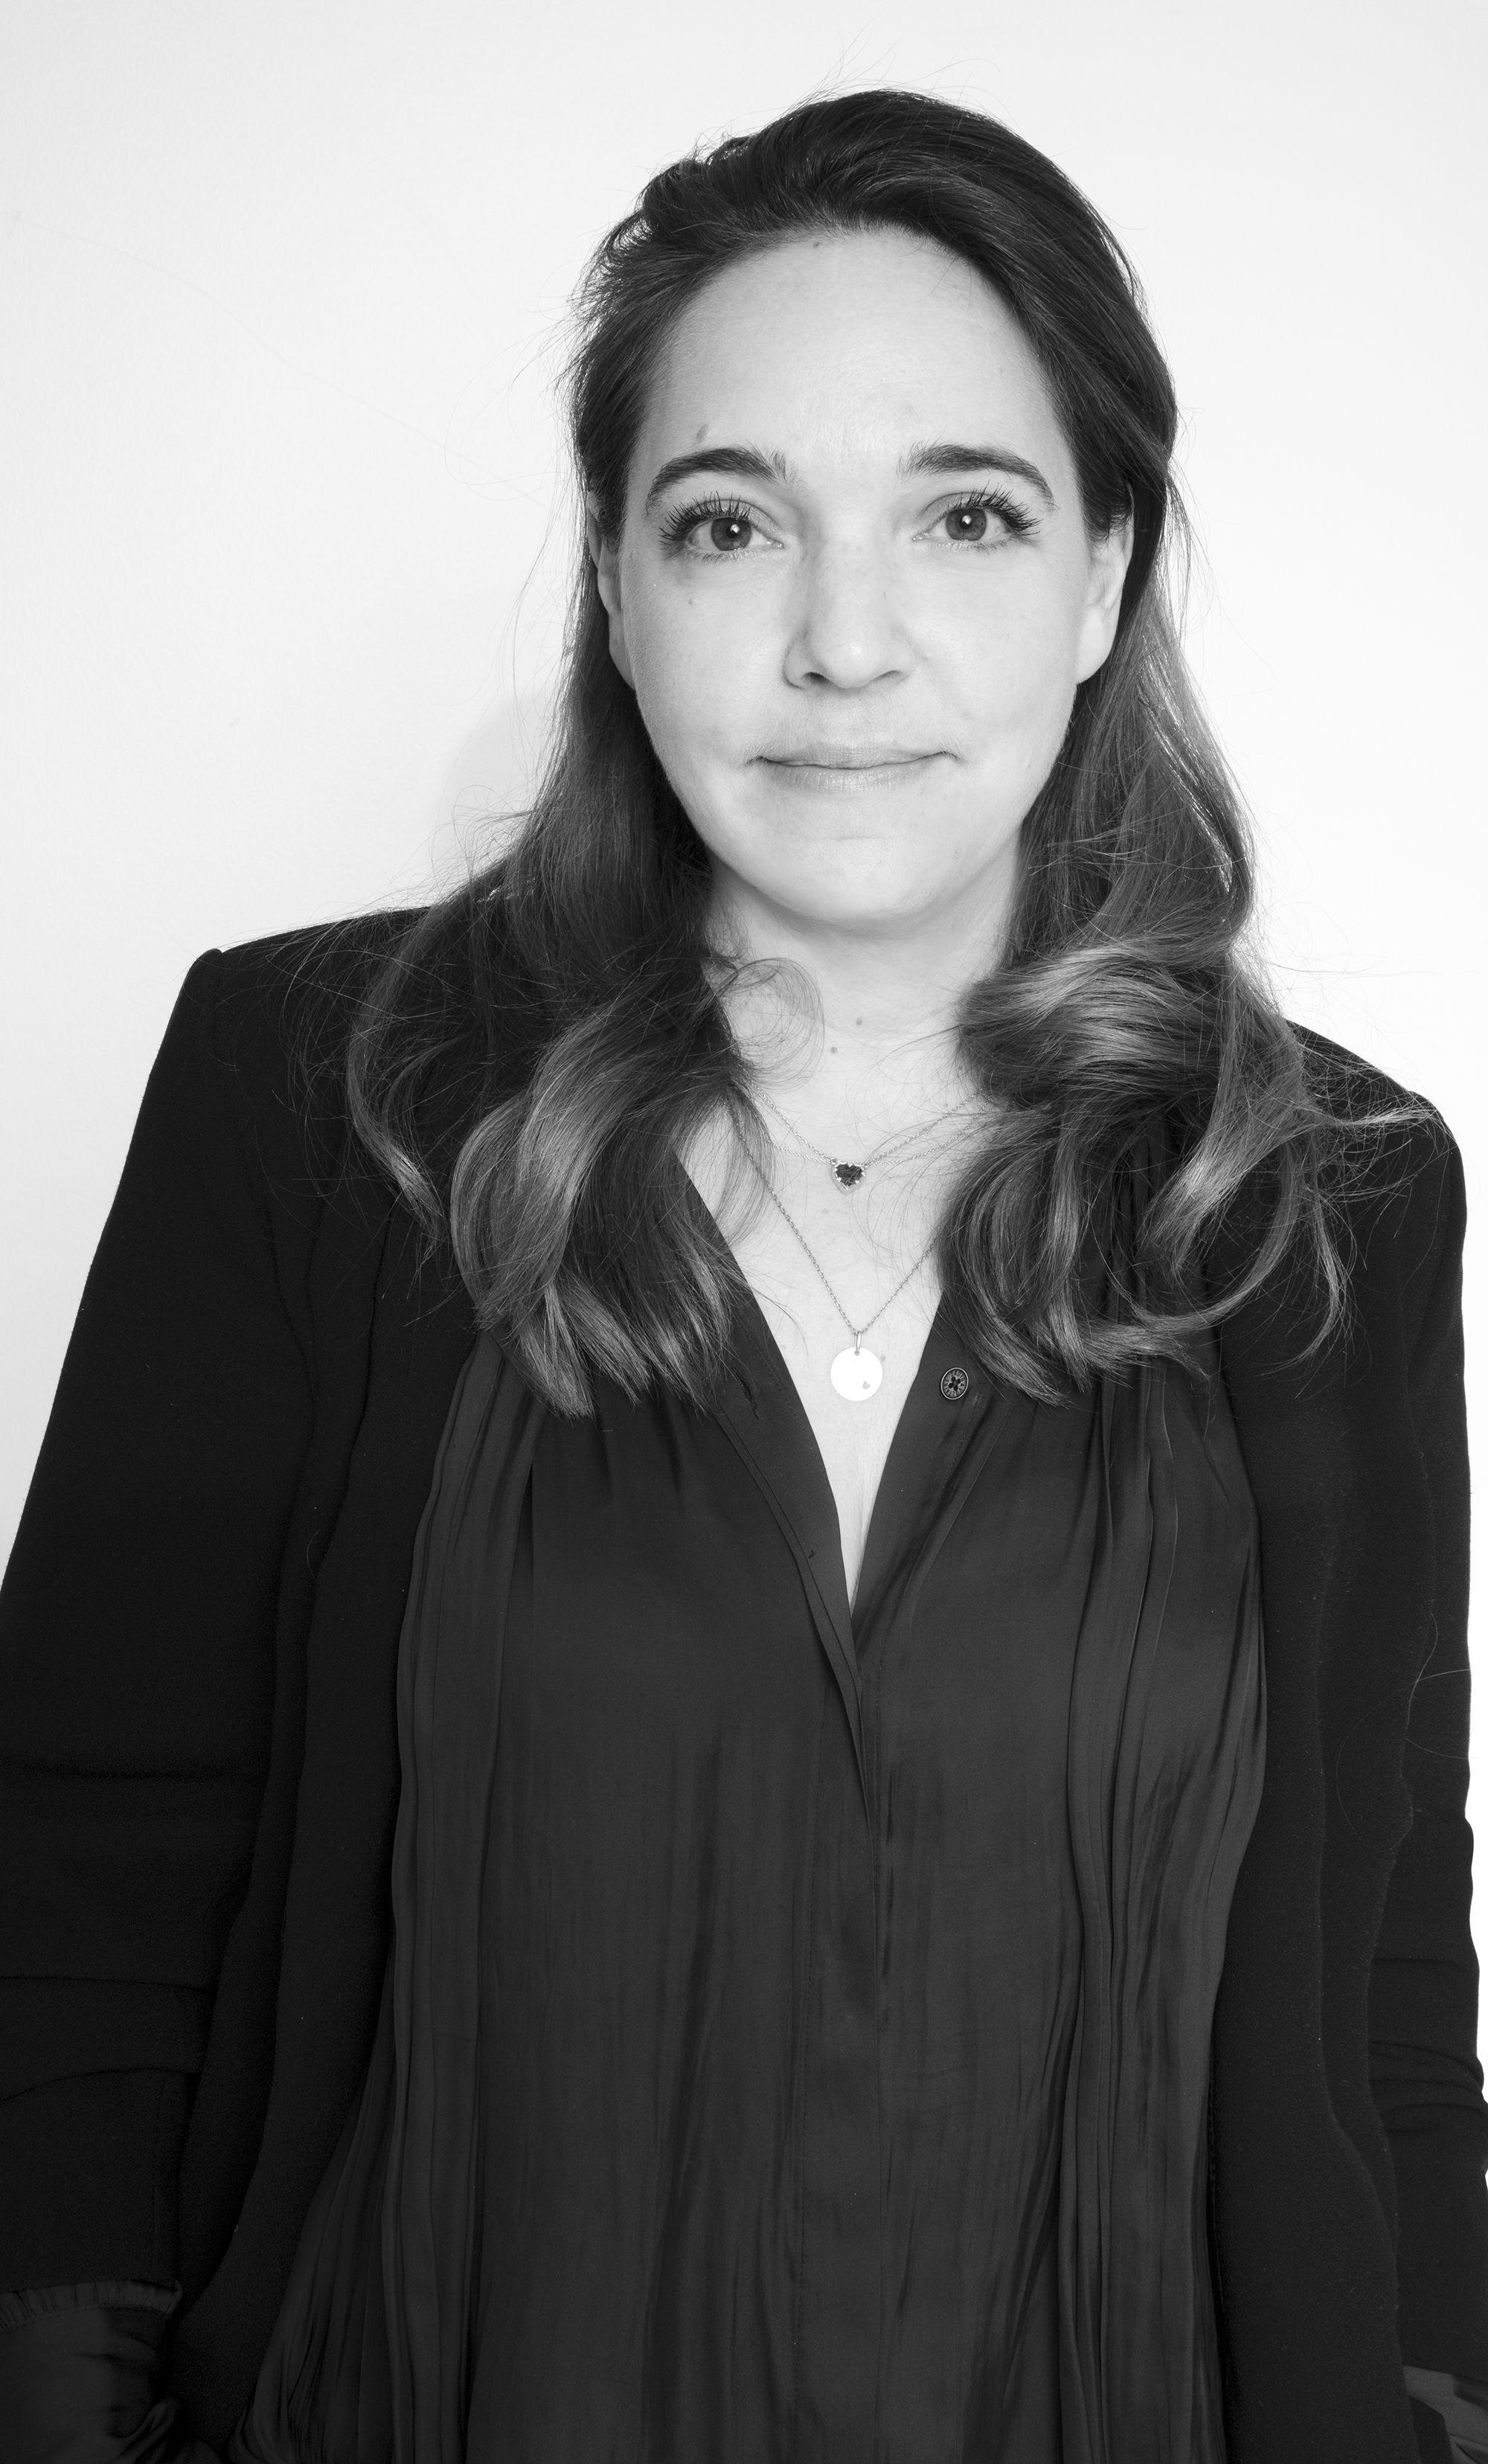 Hélène Jessua has been named head of sustainable development for Zadig & Voltaire